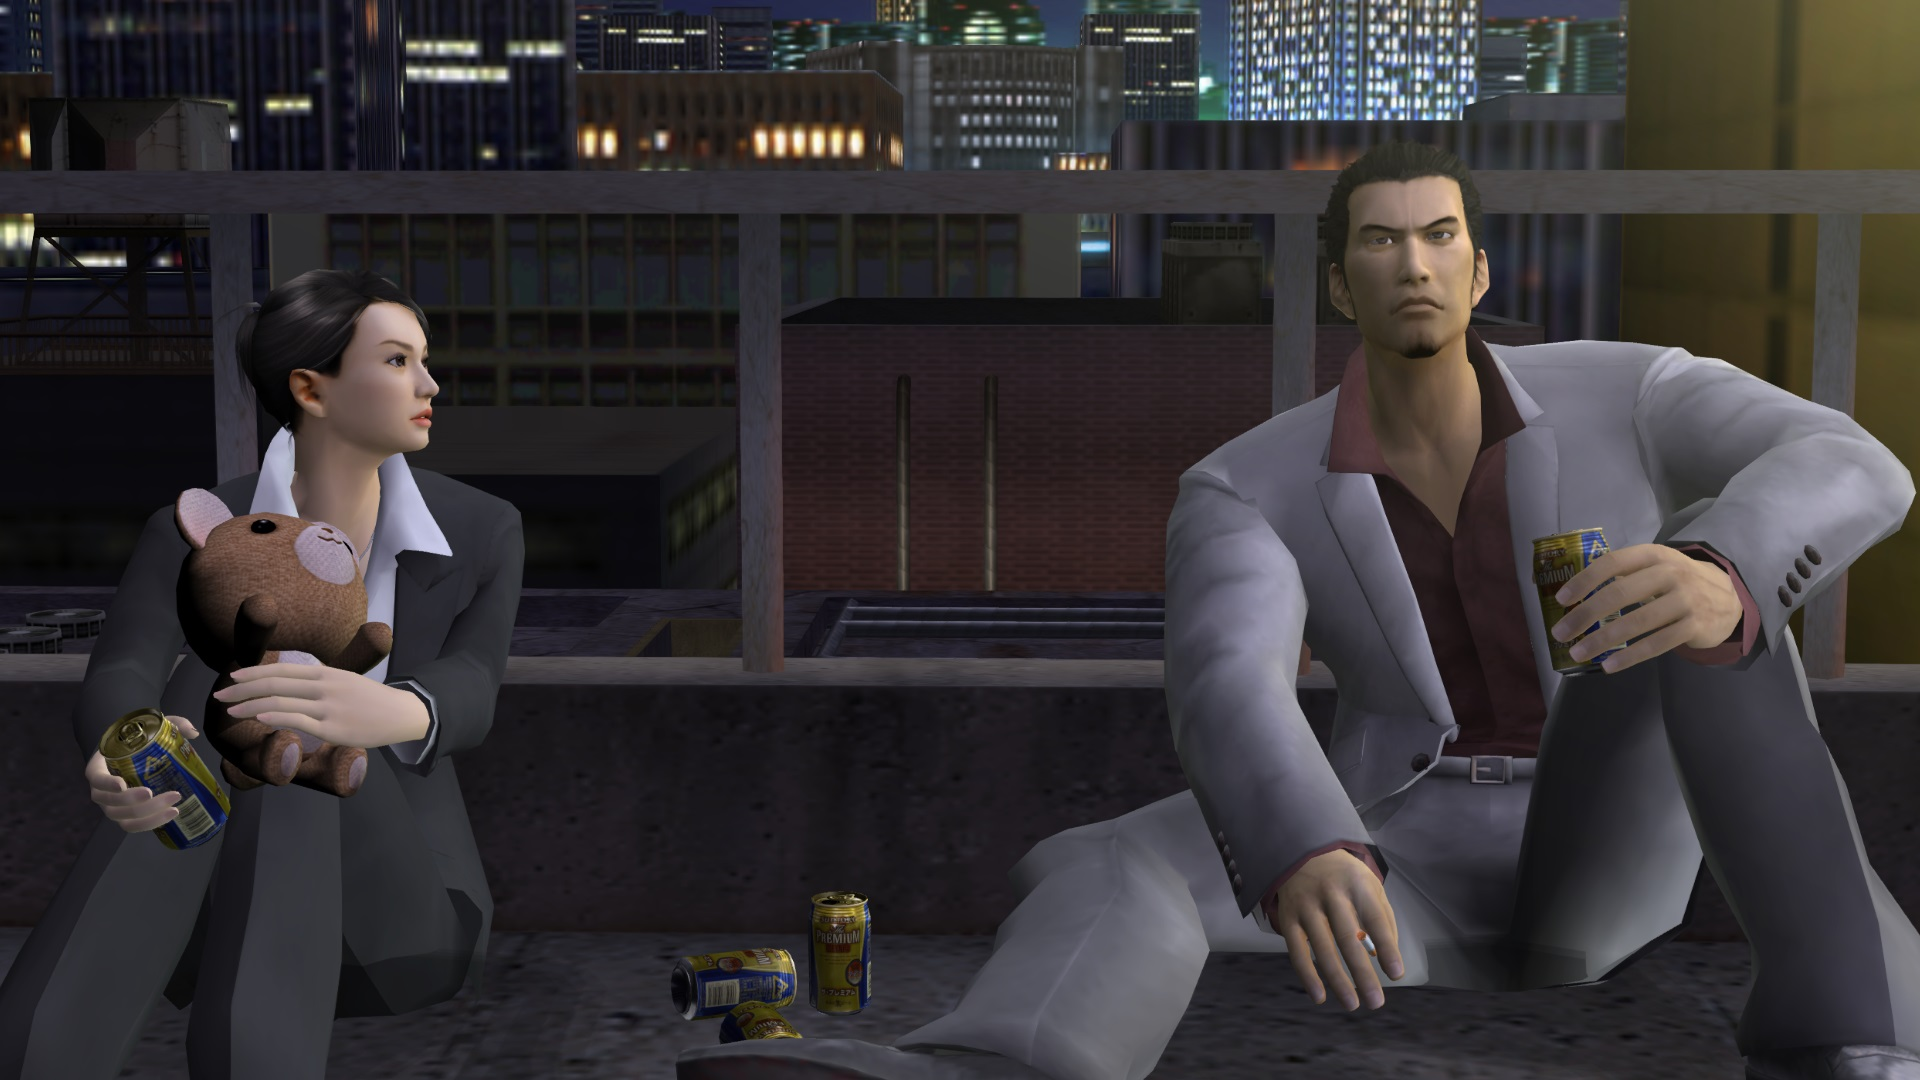 Yakuza Kiwami 2 Leaked On PlayStation Store